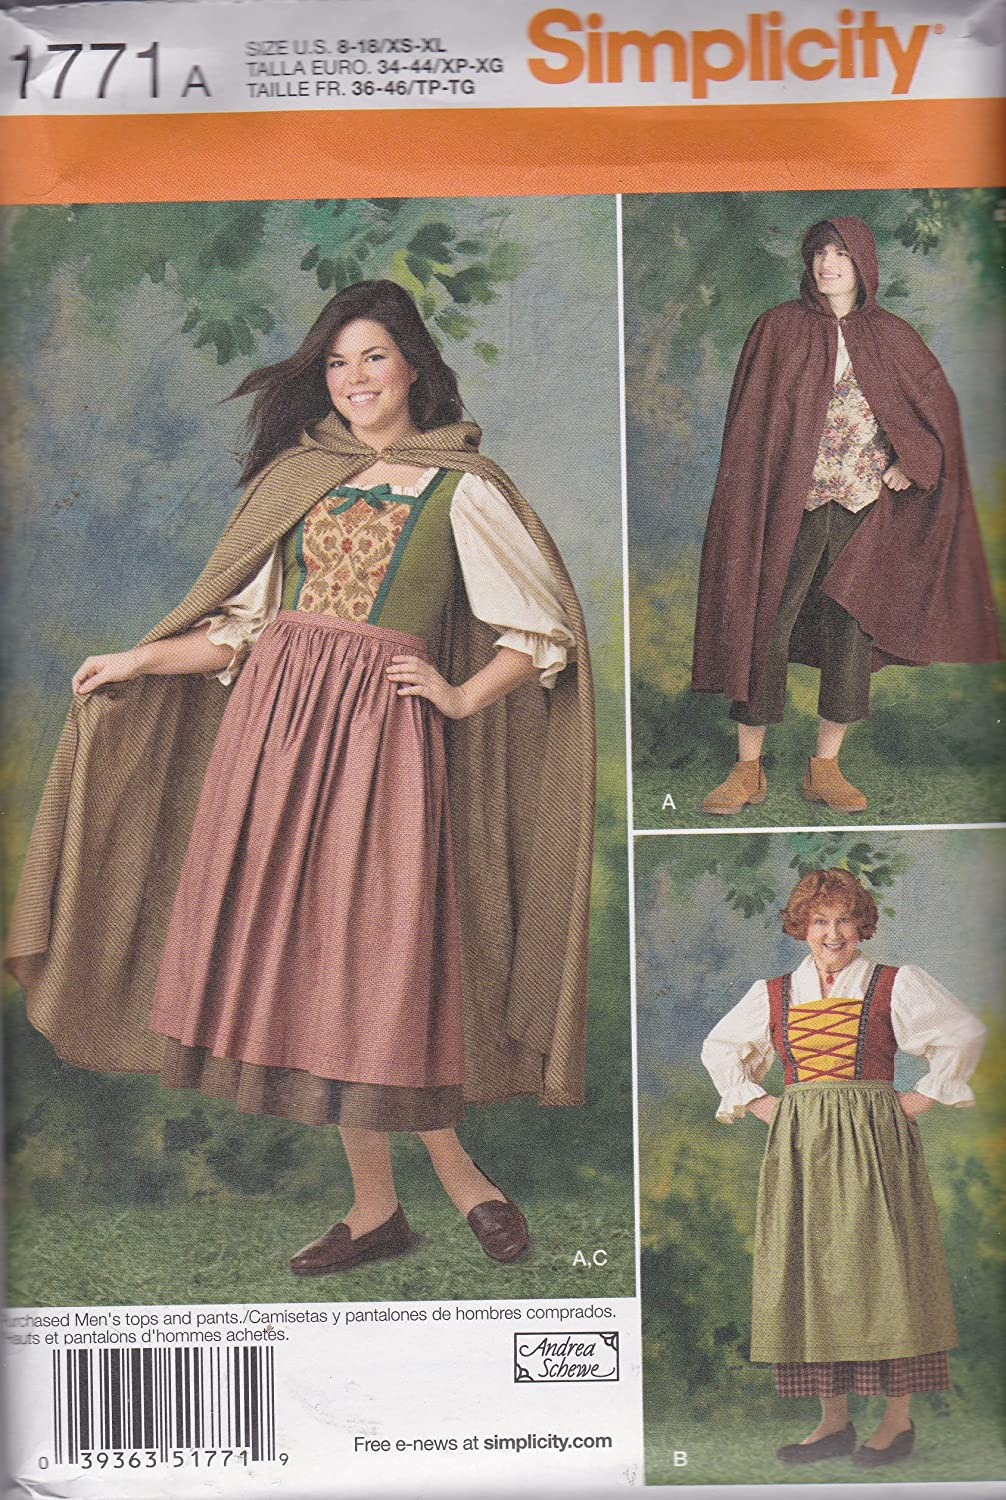 Amazon.com: Misses And Mens Costume Simplicity Sewing Pattern 1771 A (Size: 8-18/XS-XL): Arts, Crafts & Sewing